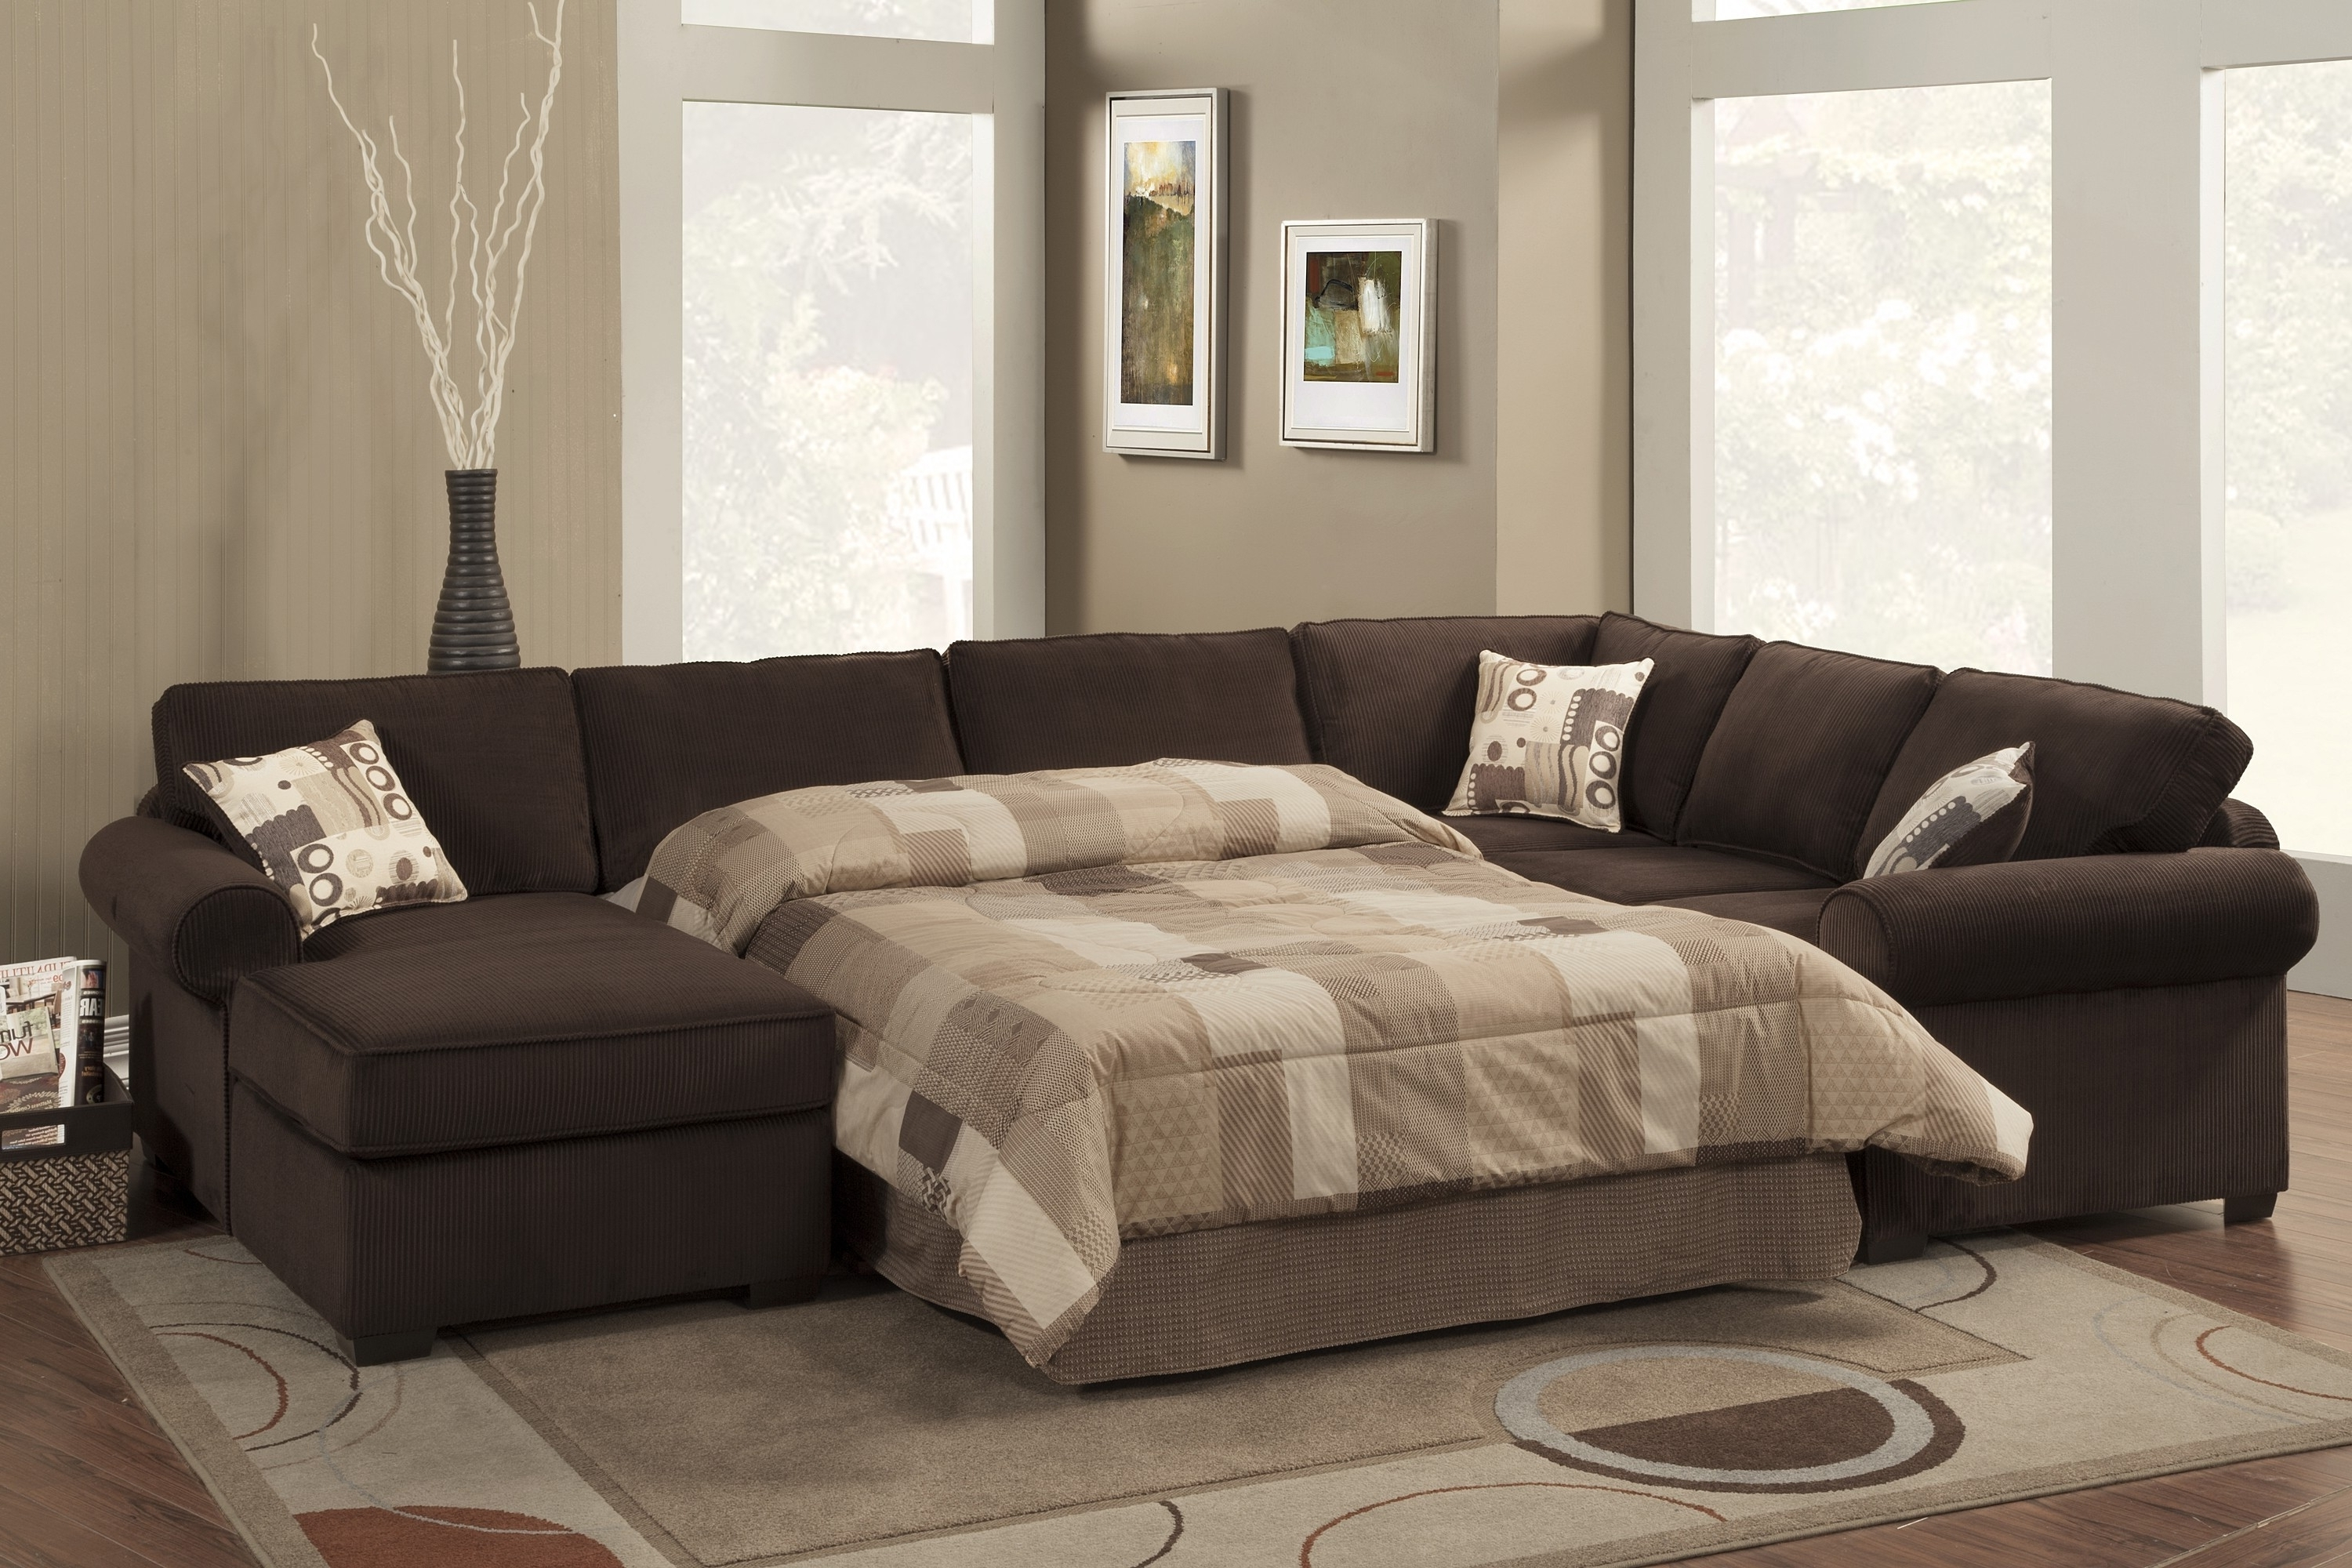 Best And Newest Sectional Sofas With Queen Size Sleeper Regarding Extraordinary Sleeper Sofa Sectional Alluring Home Design (View 8 of 15)